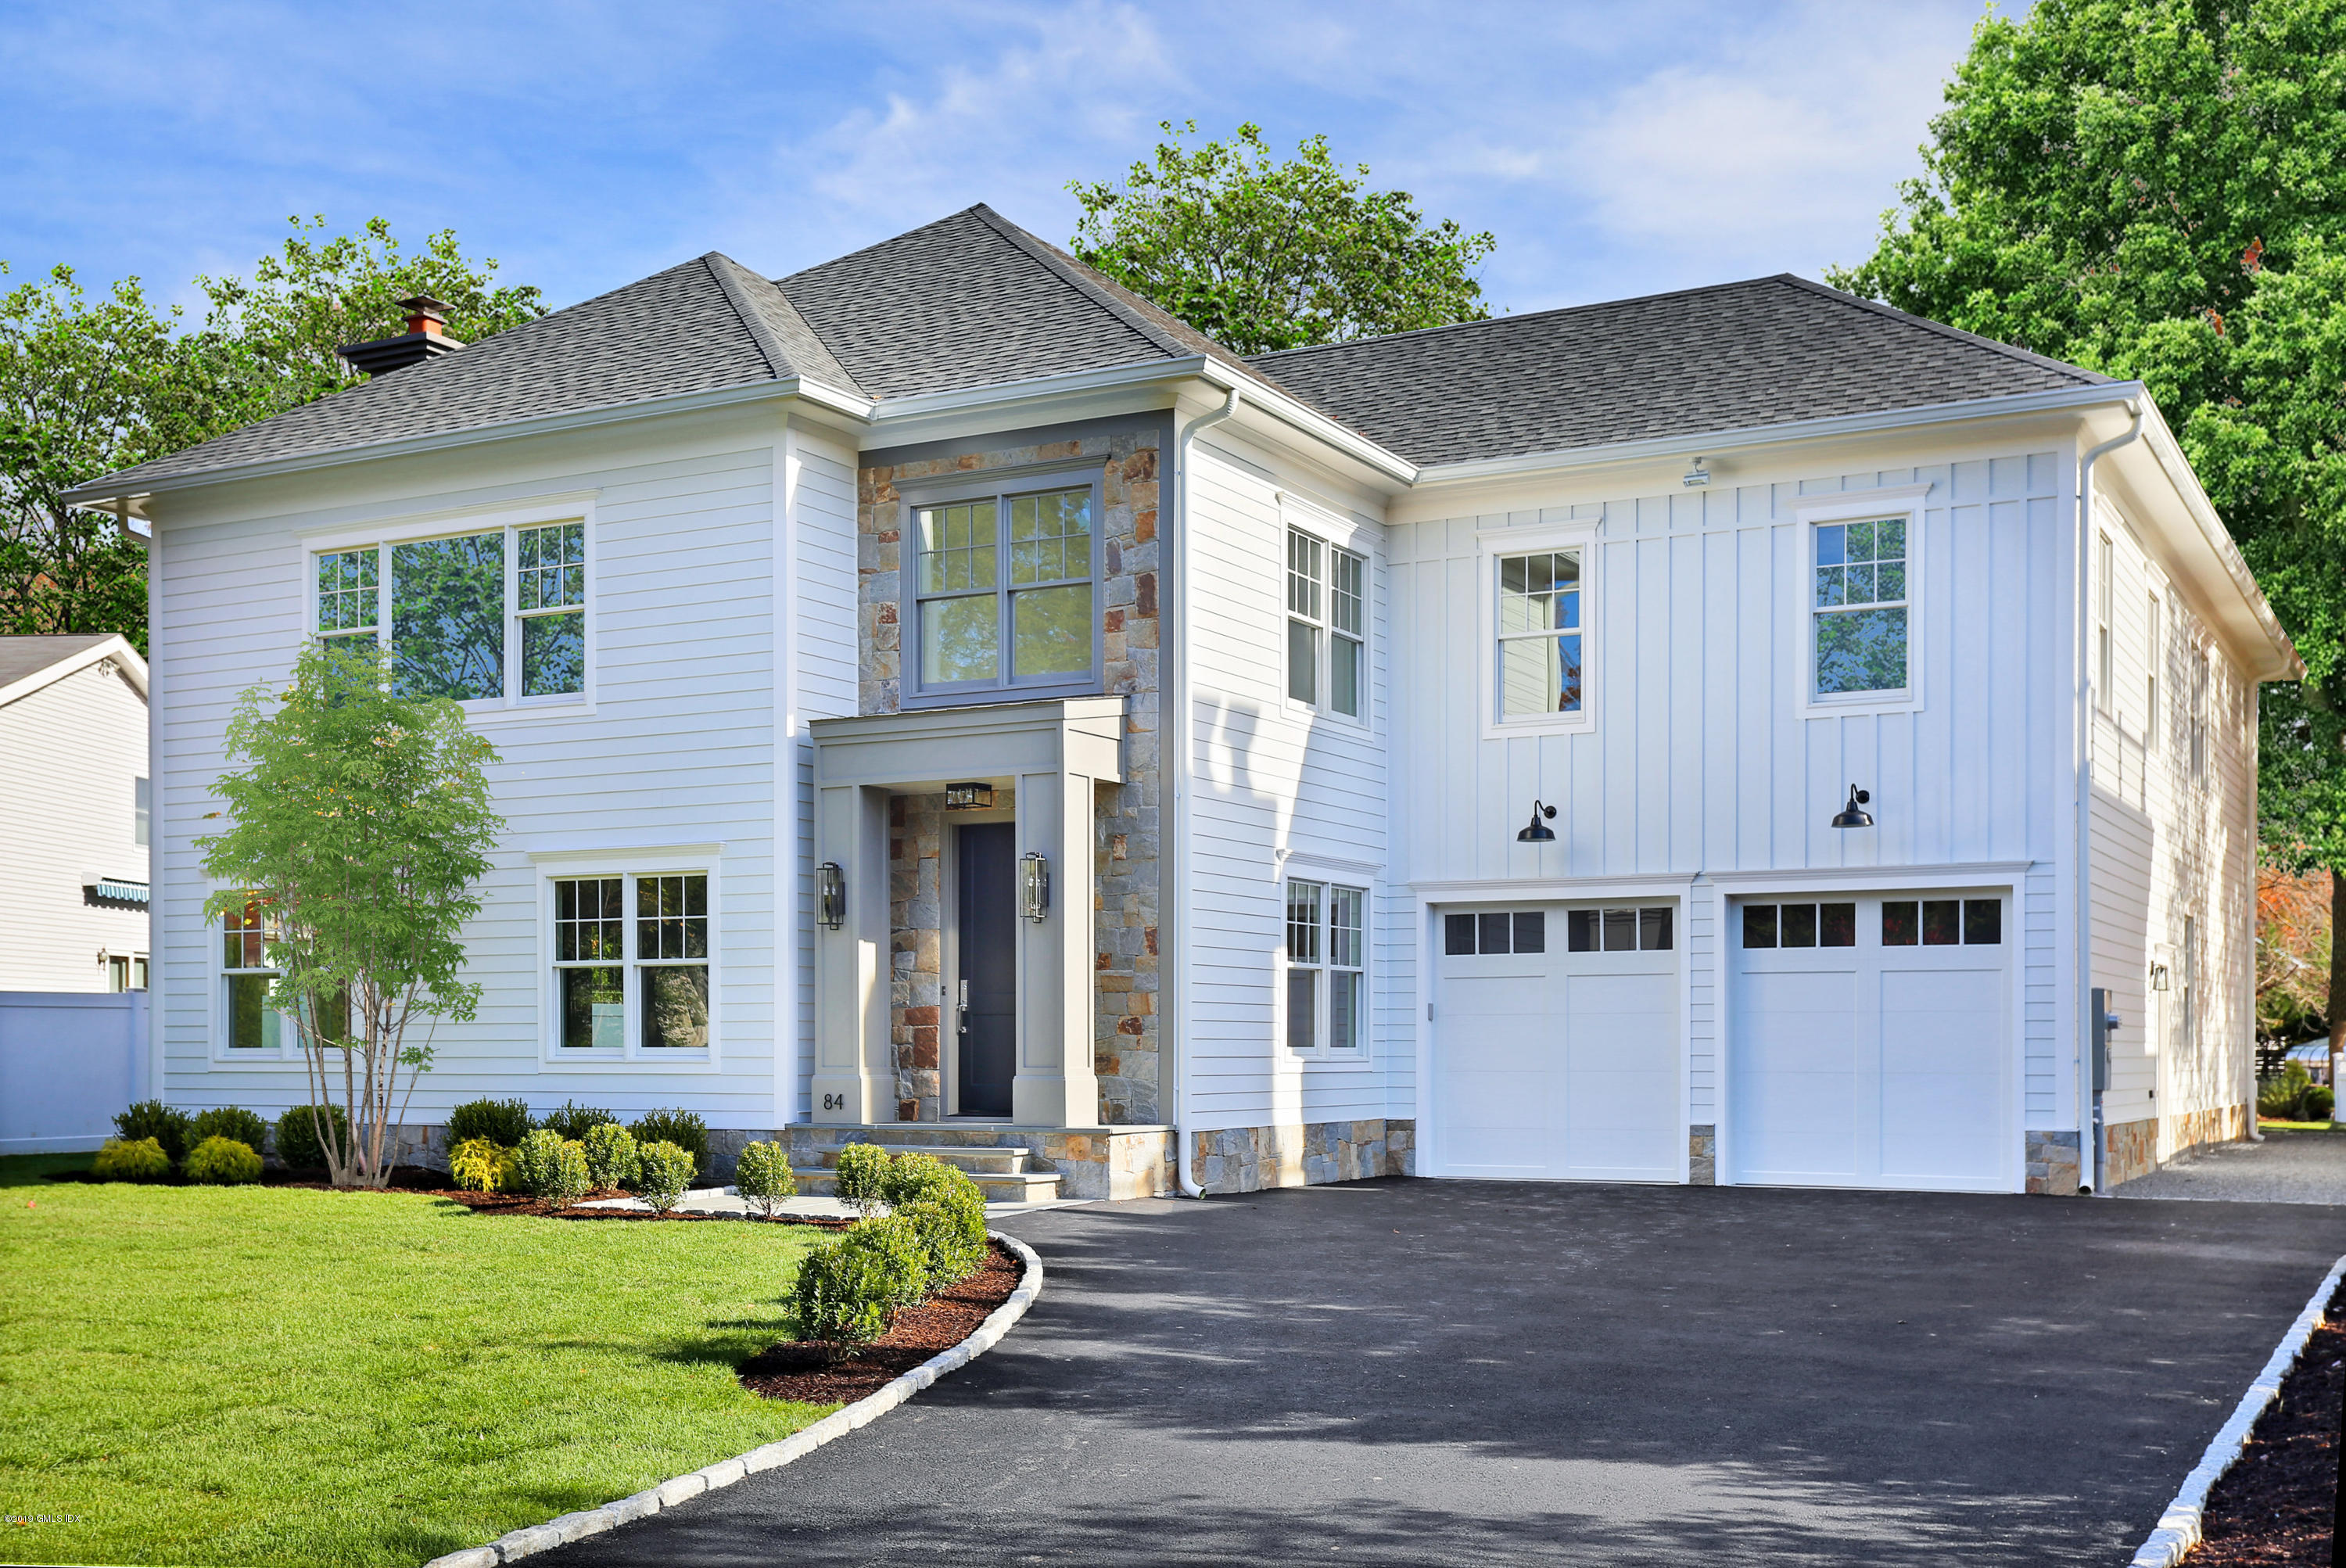 84 Circle Drive,Greenwich,Connecticut 06830,5 Bedrooms Bedrooms,4 BathroomsBathrooms,Single family,Circle,105812